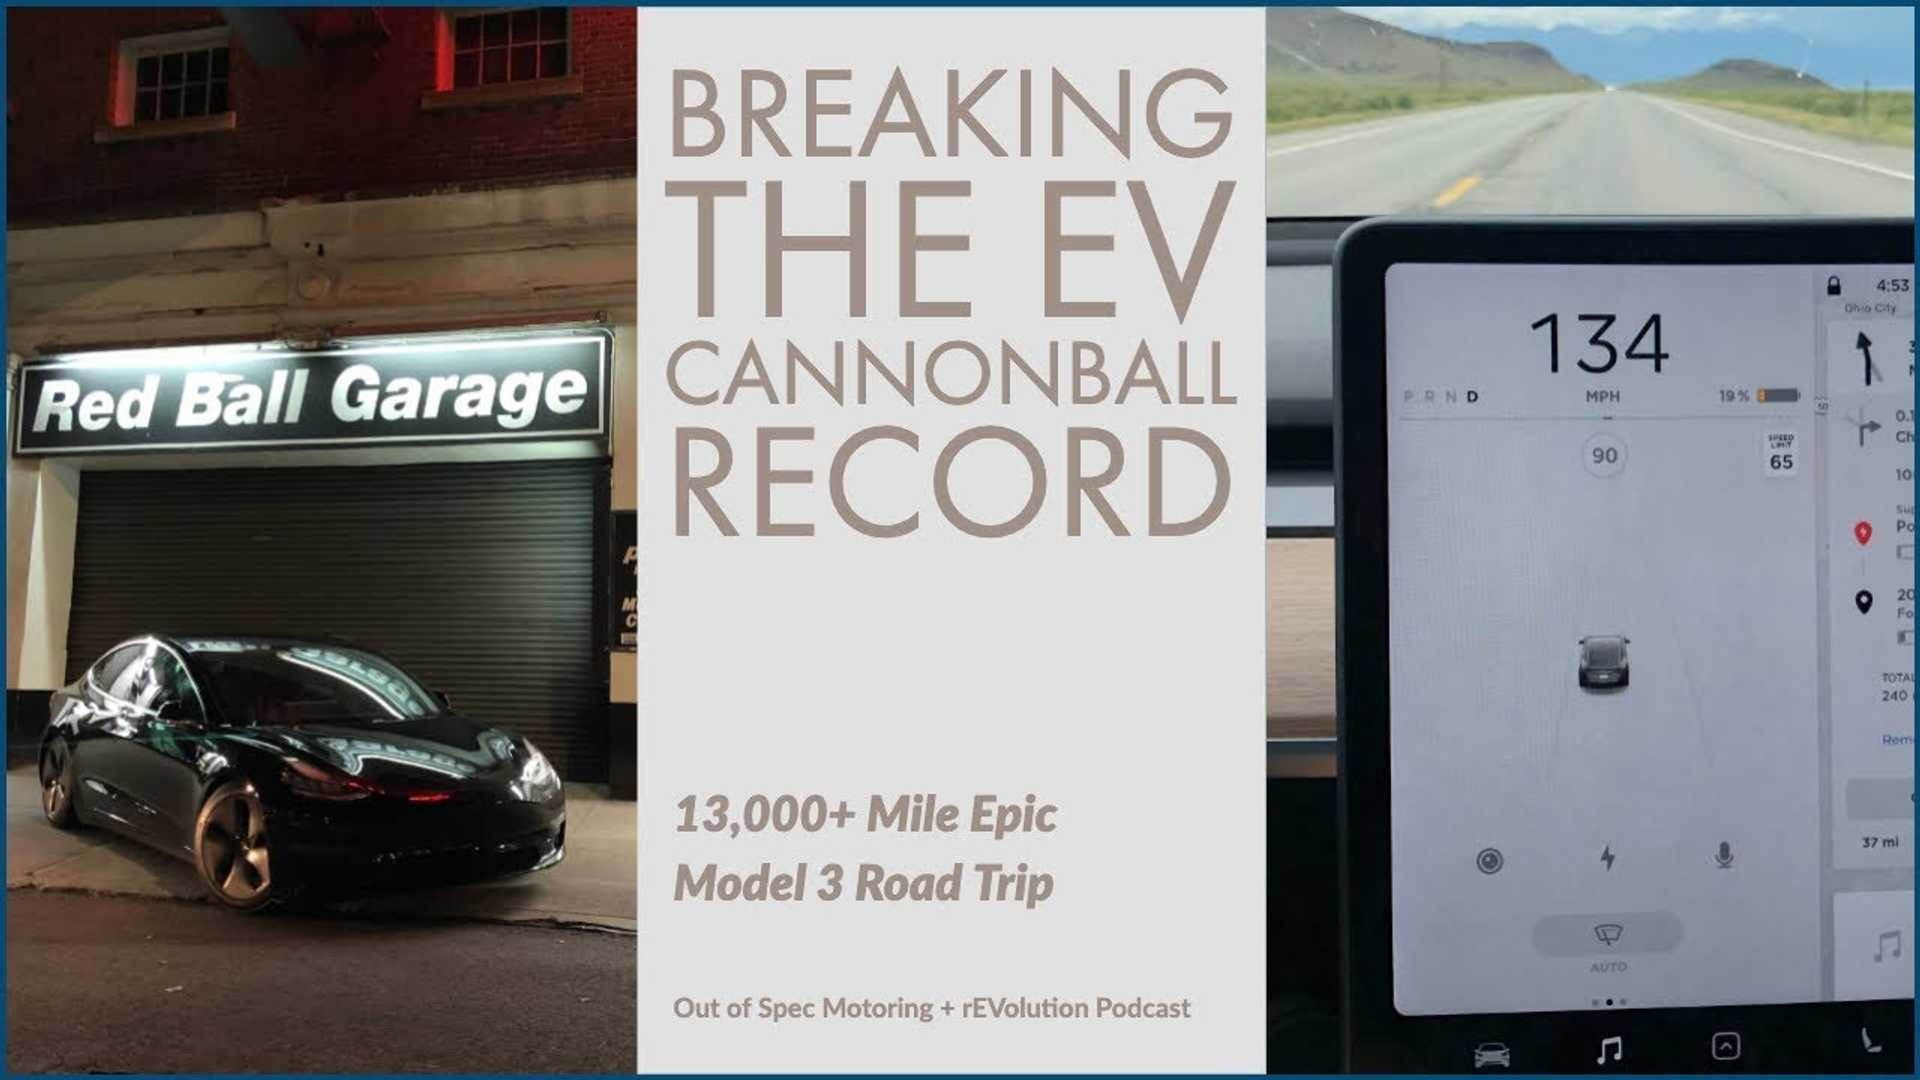 Whopping 13,000-Mile Tesla Model 3 Road Trip, Plus Cannonball Record